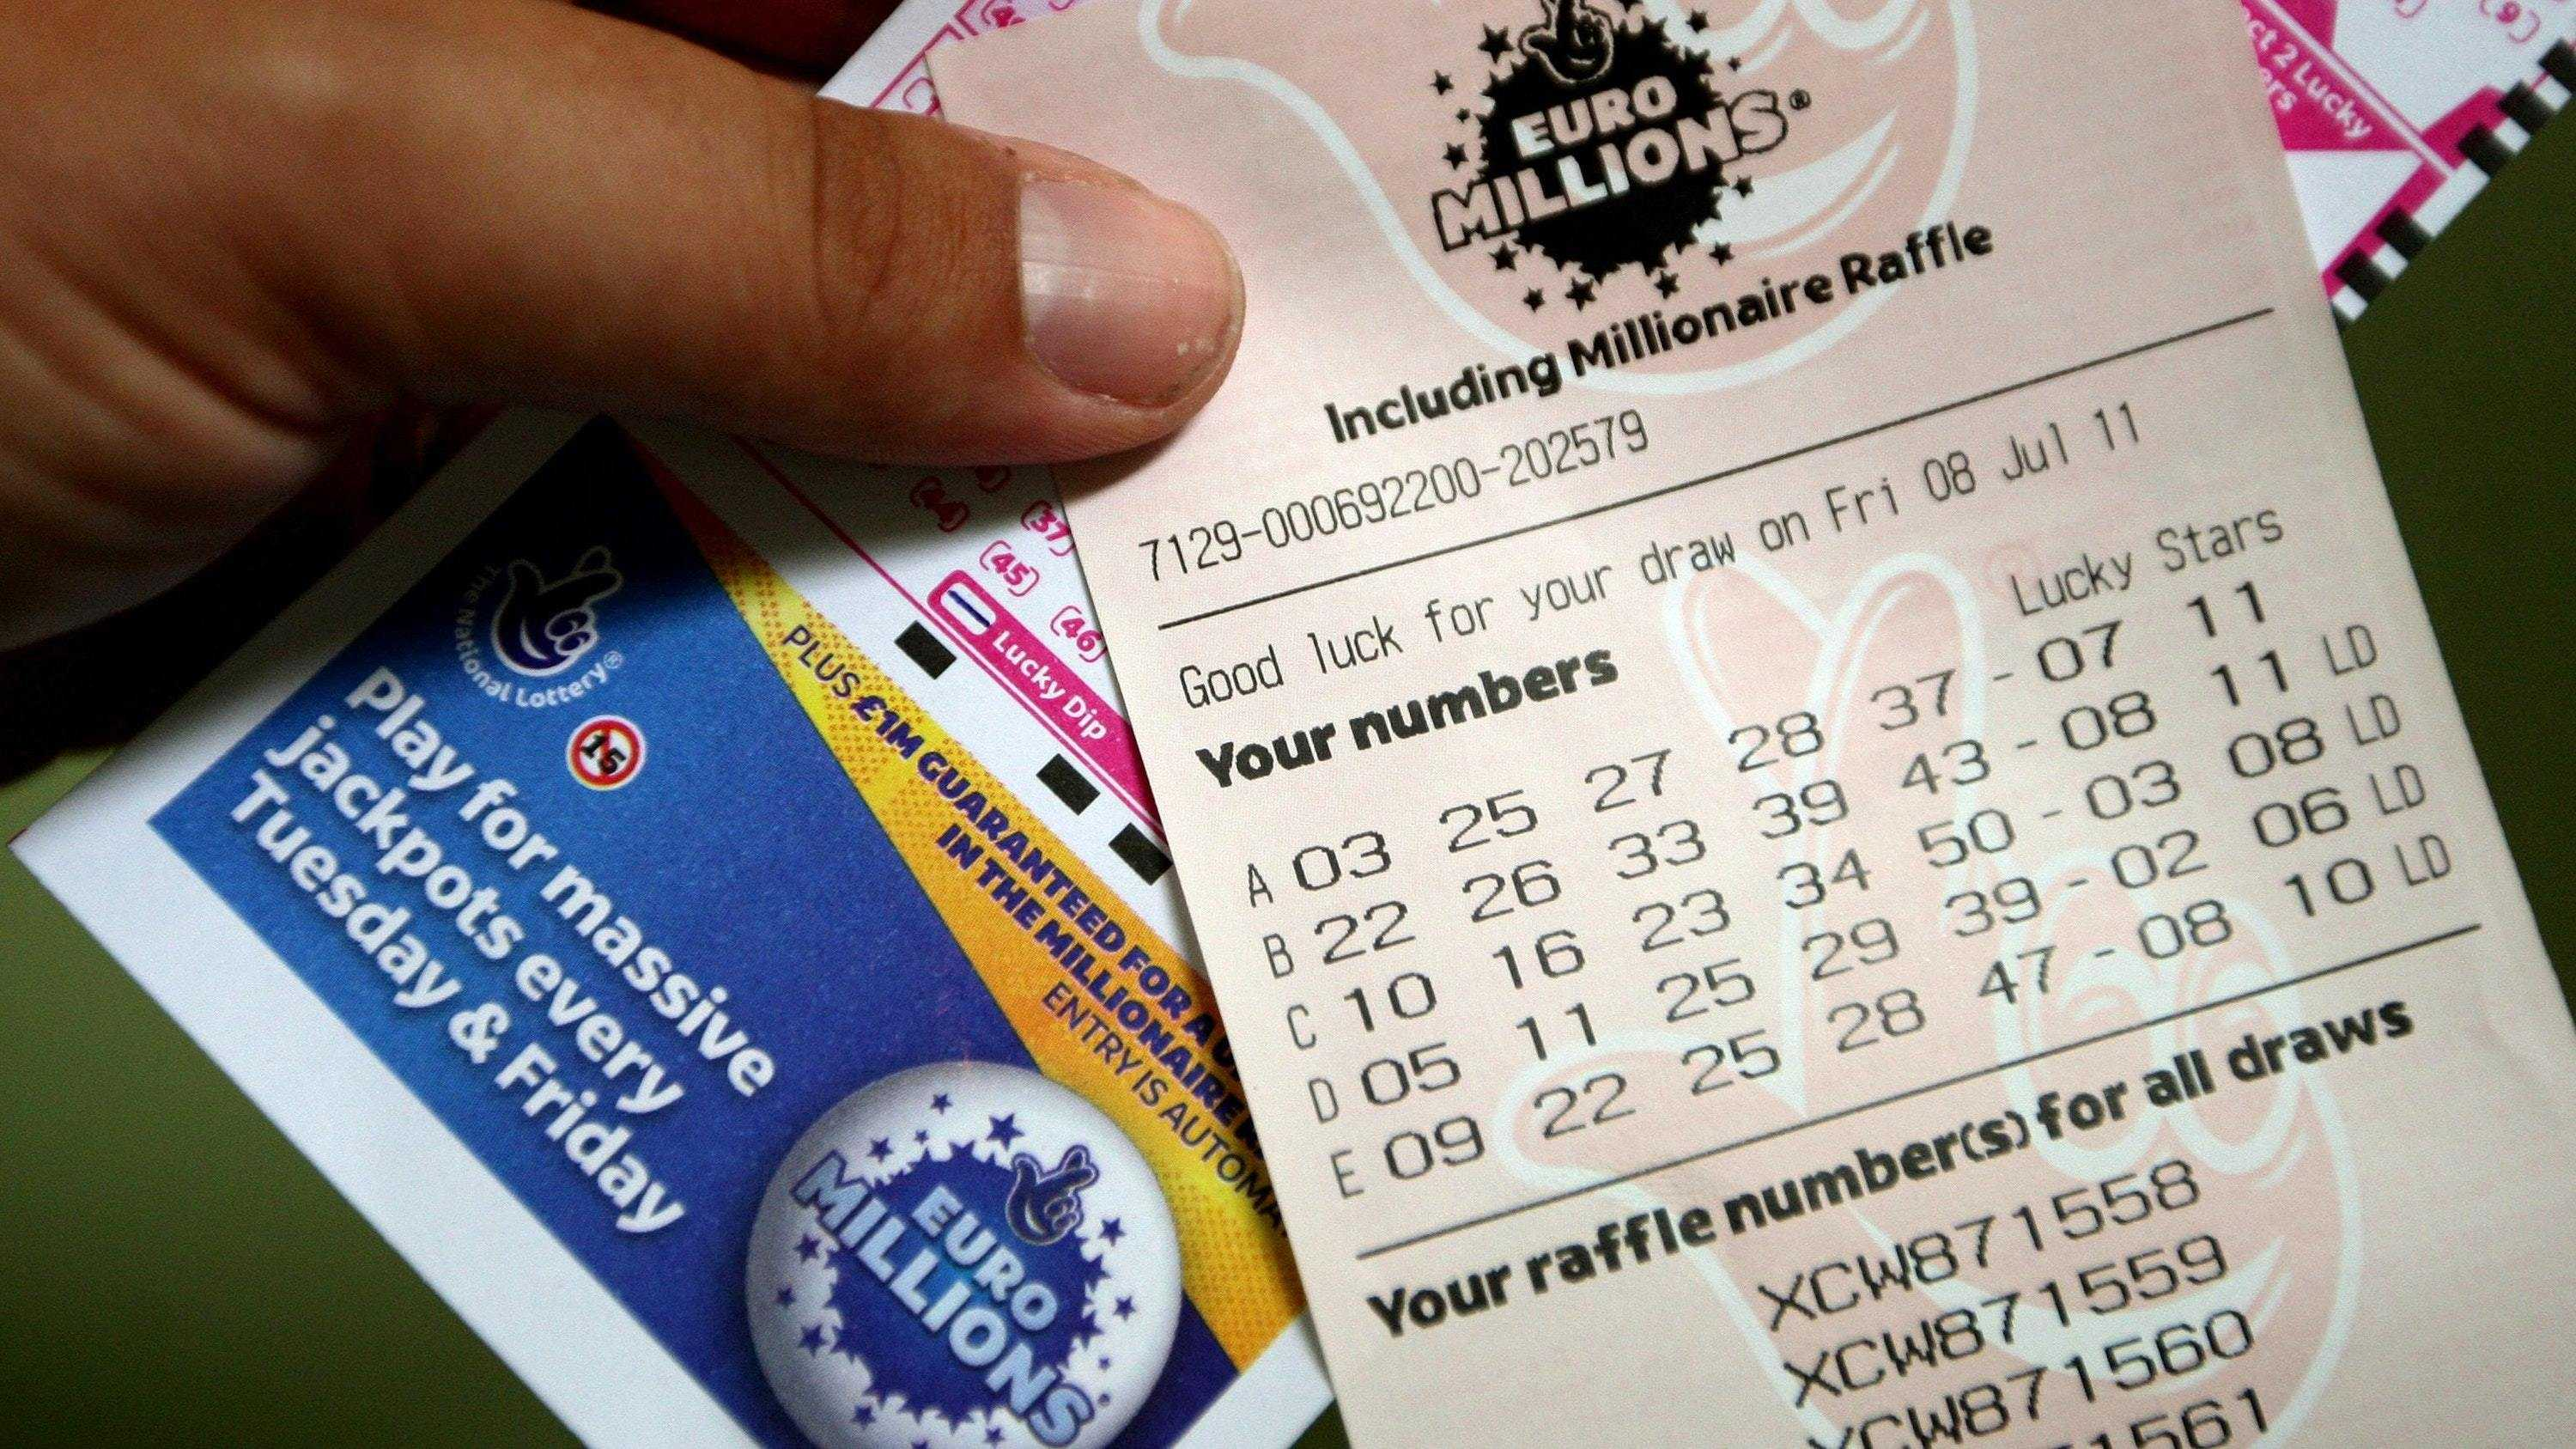 EuroMillions lottery prizes